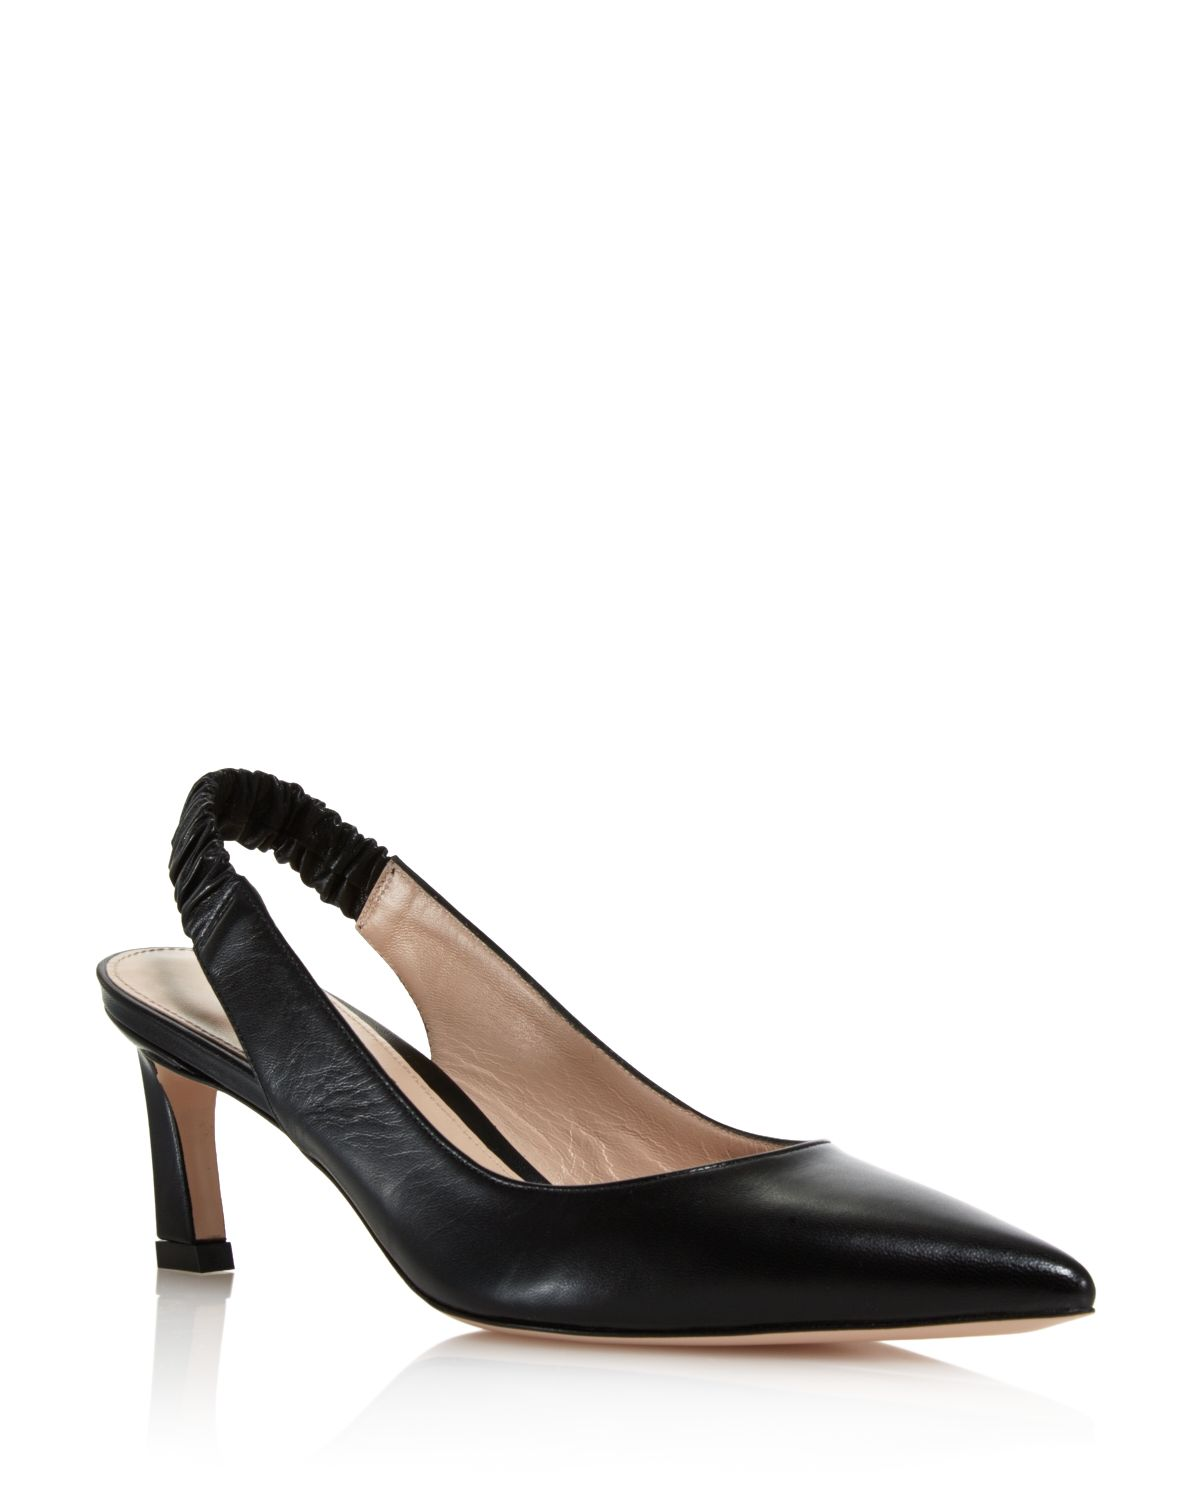 Stuart Weitzman Hayday leather slingback pumps